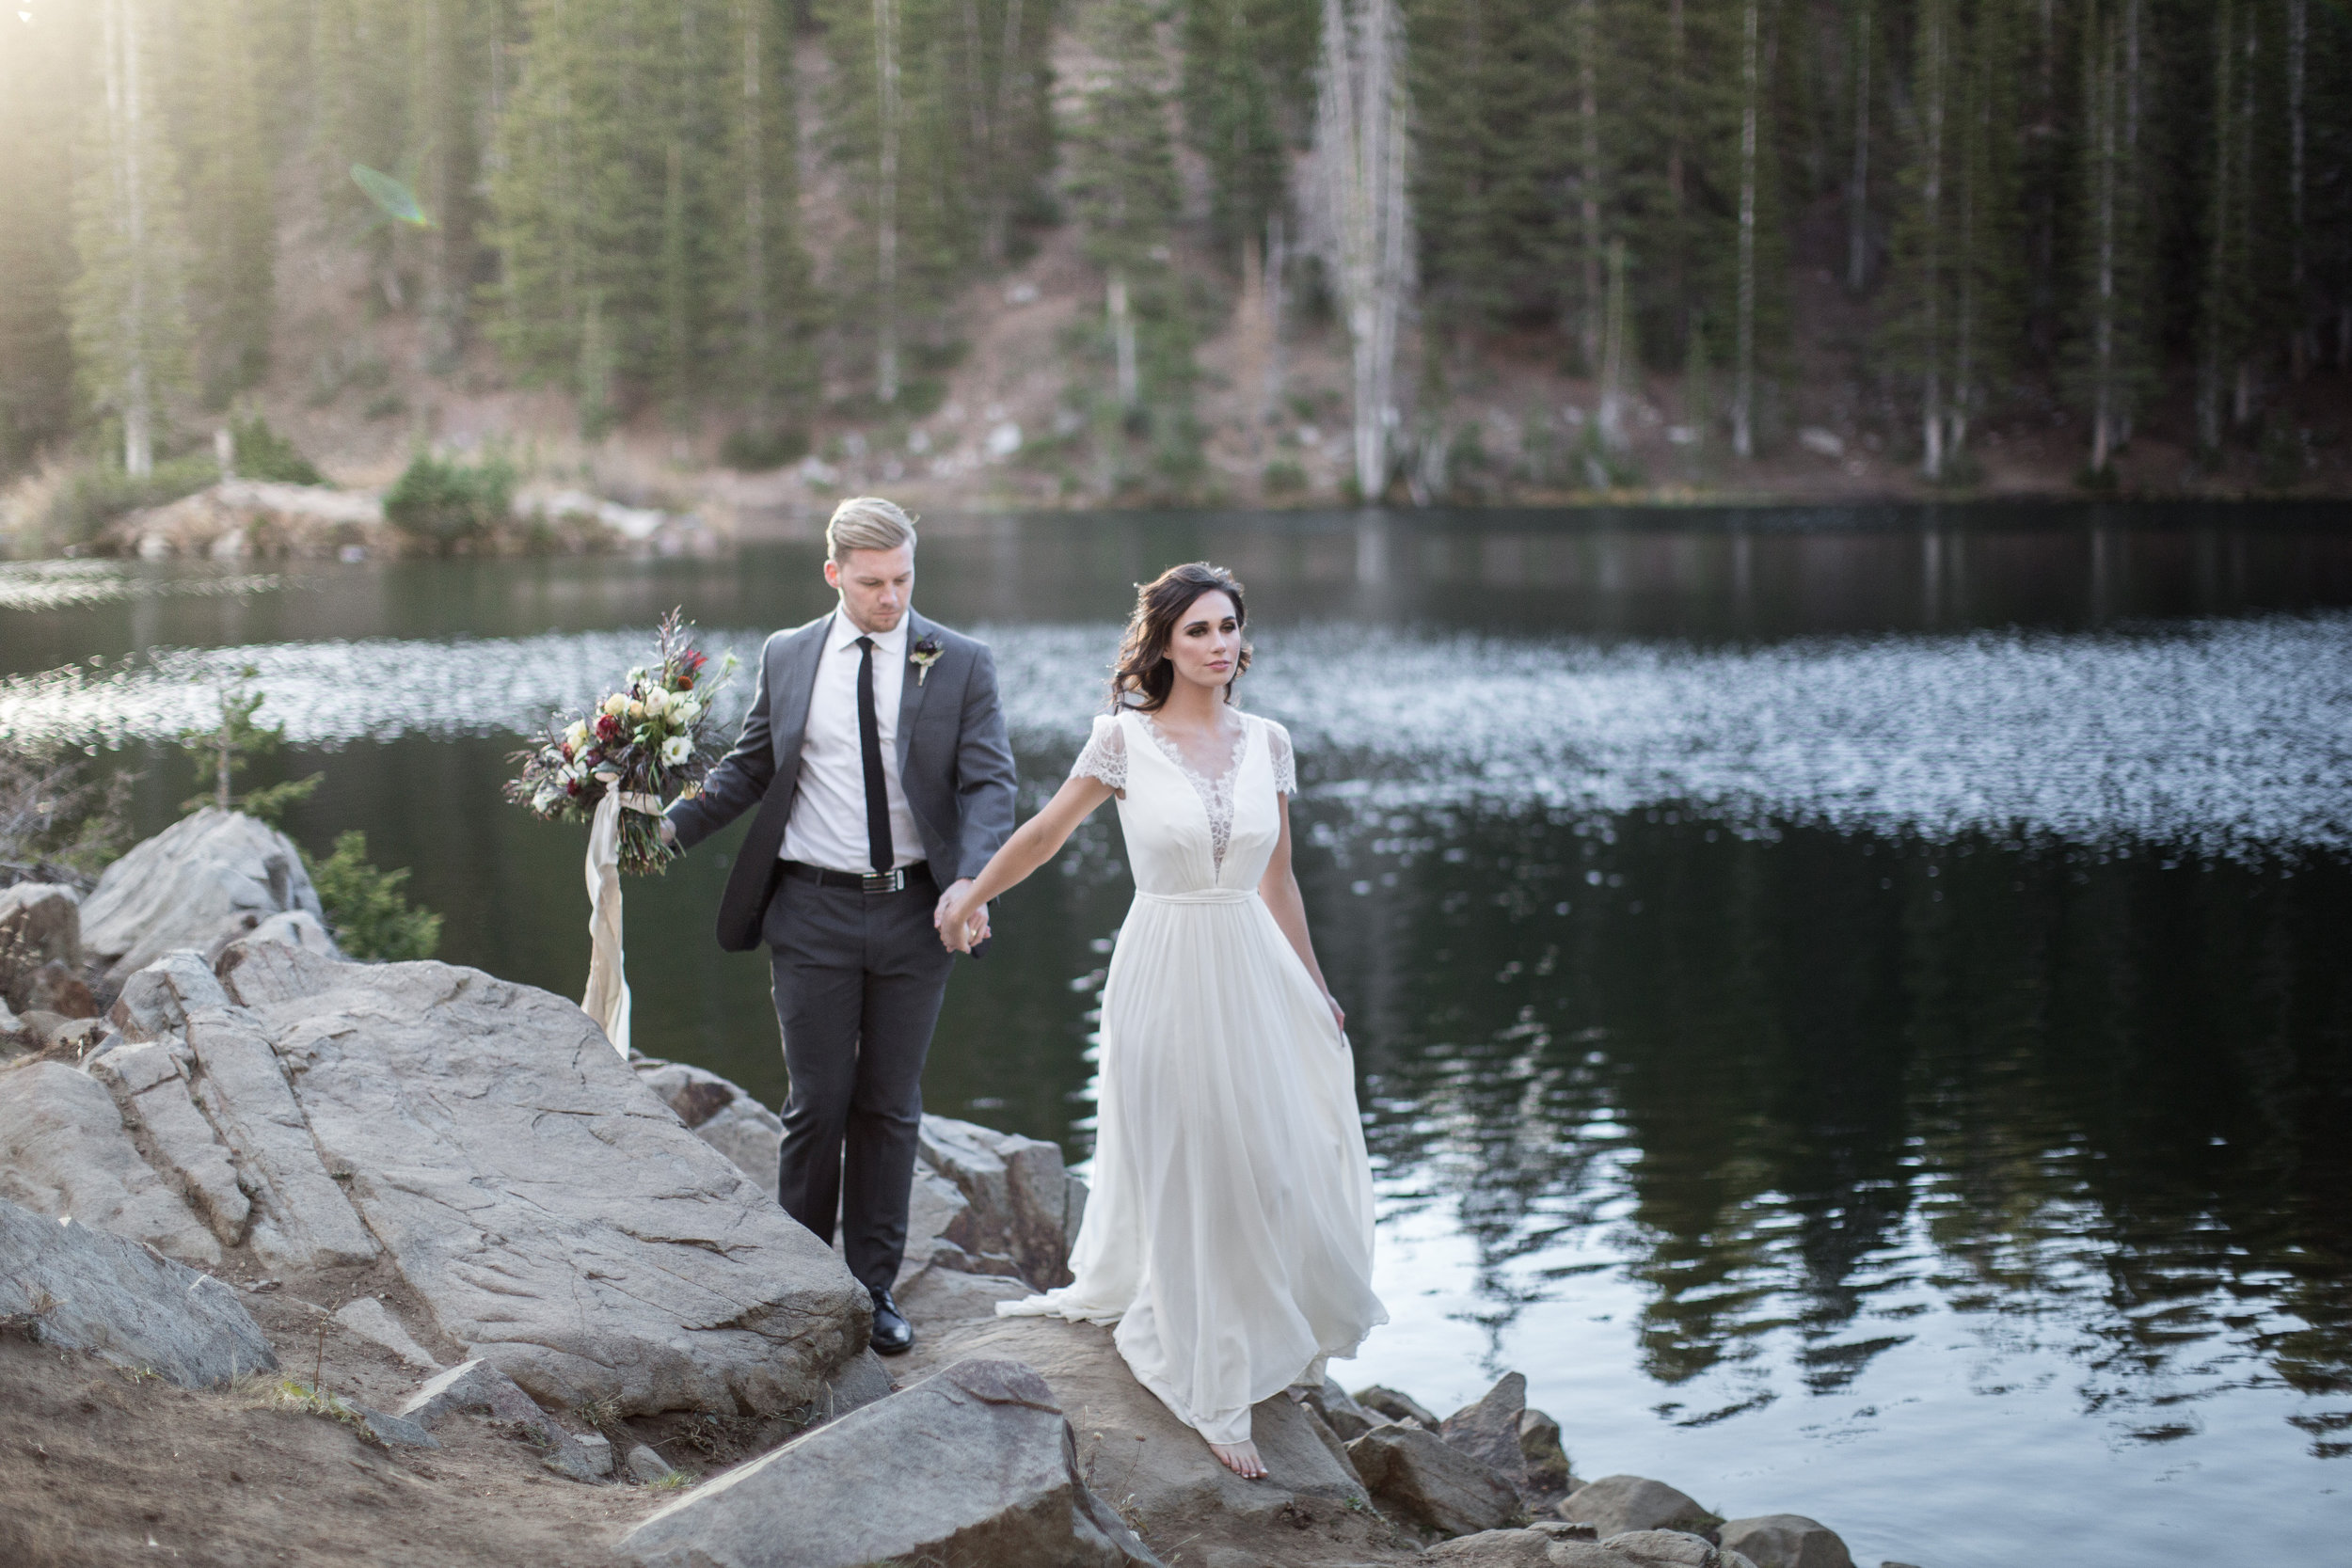 UtahValleyBrideShootTR2016 (82 of 110).jpg